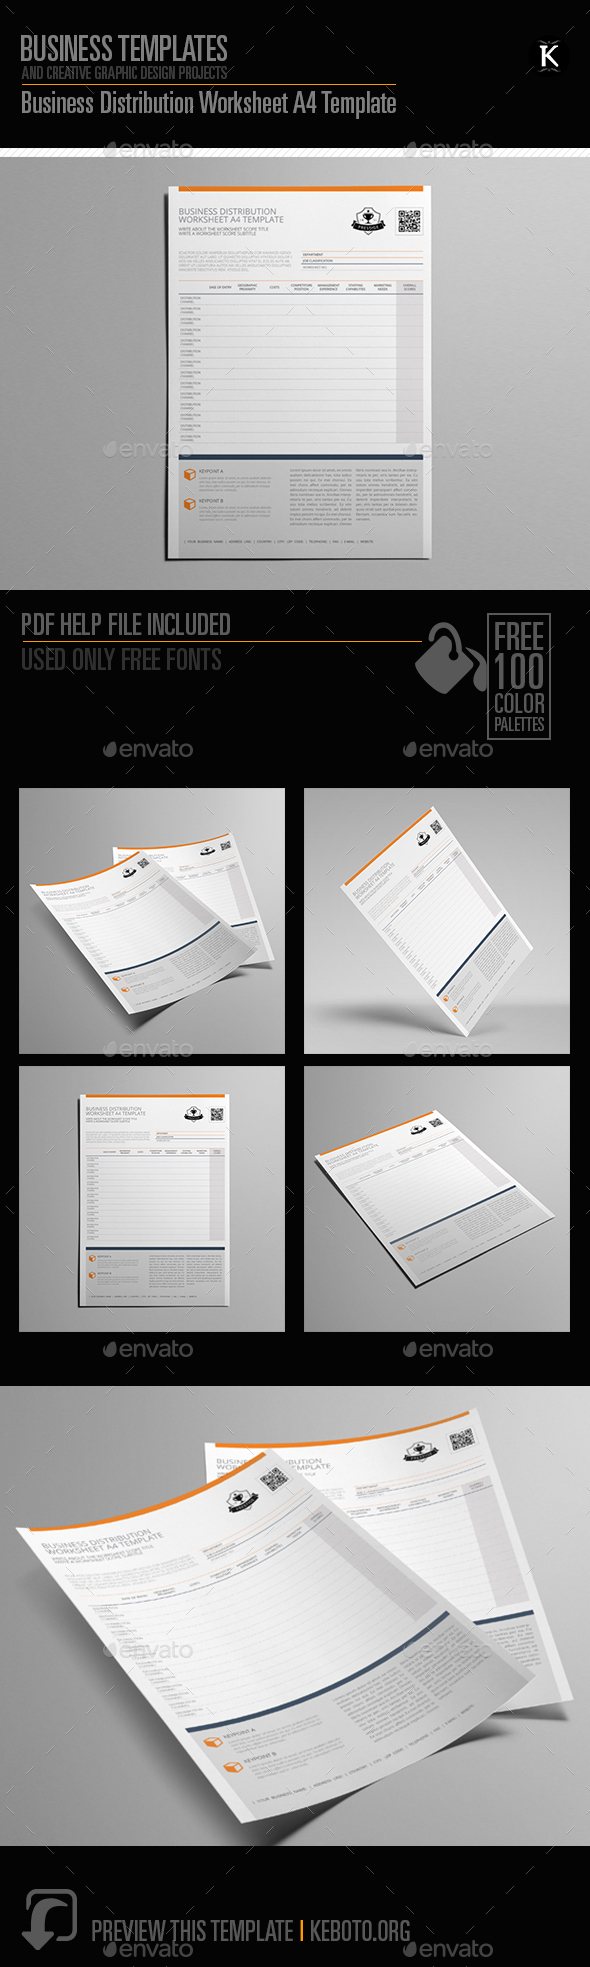 Business Distribution Worksheet A4 Template - Miscellaneous Print Templates